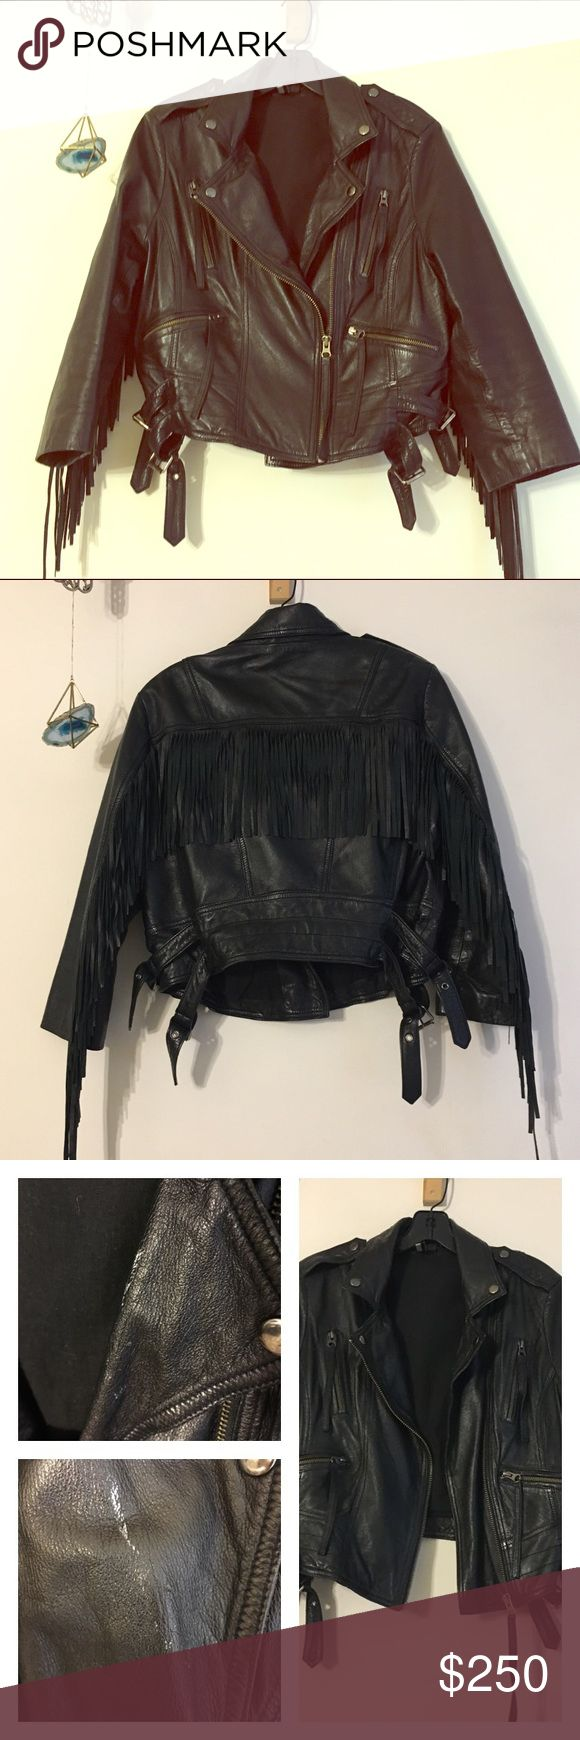 Top Shop Genuine Leather Jacket with Fringe 12 Such an